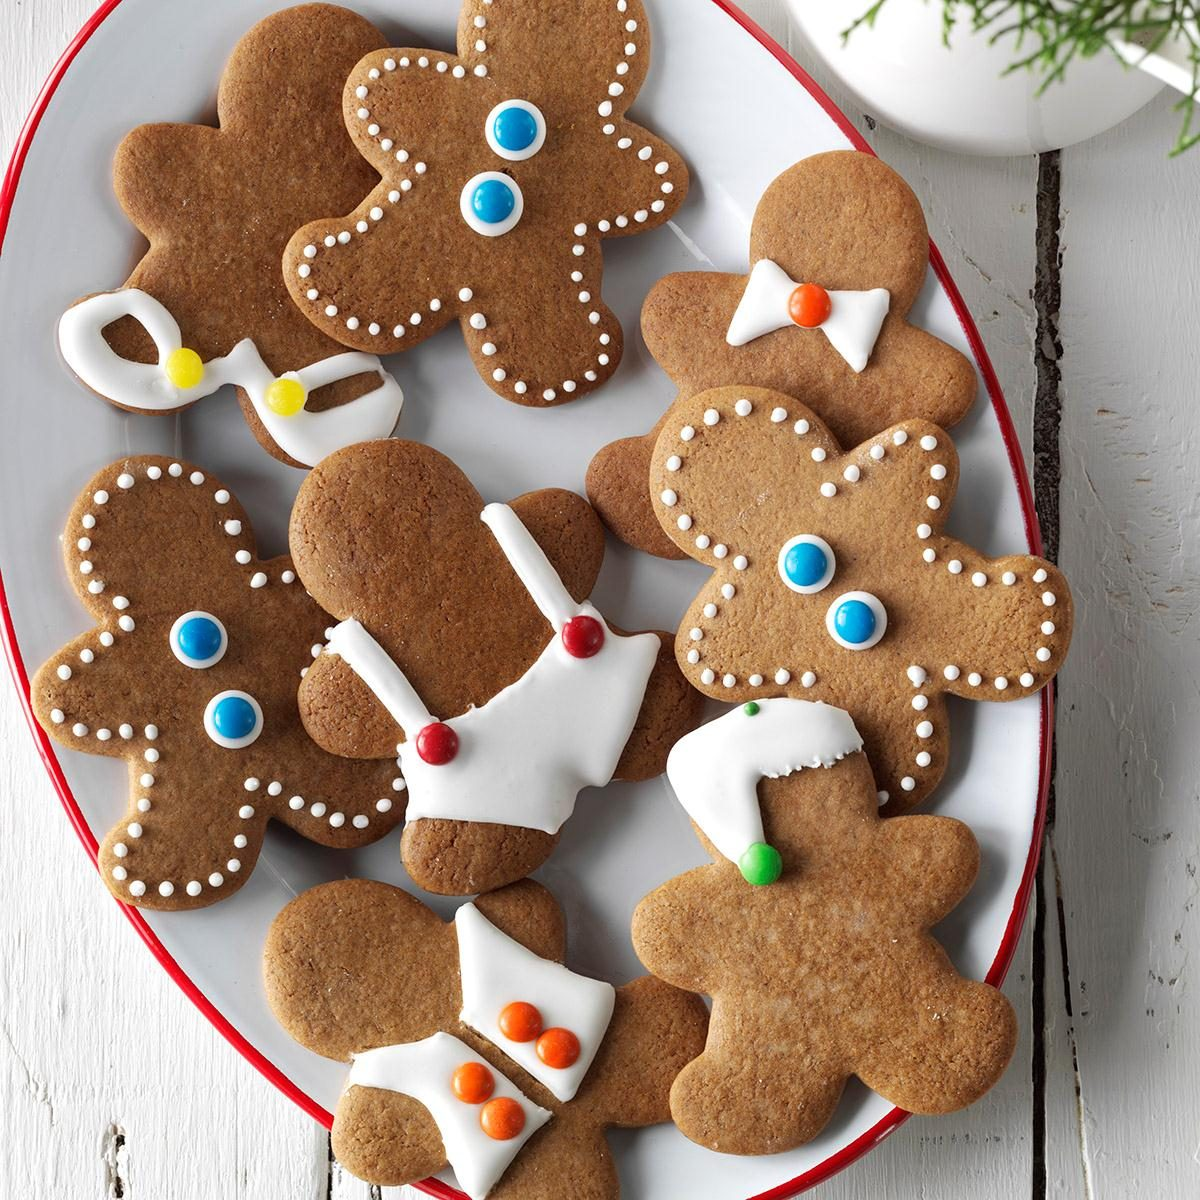 This is an image of Influential Gingerbread Men Image